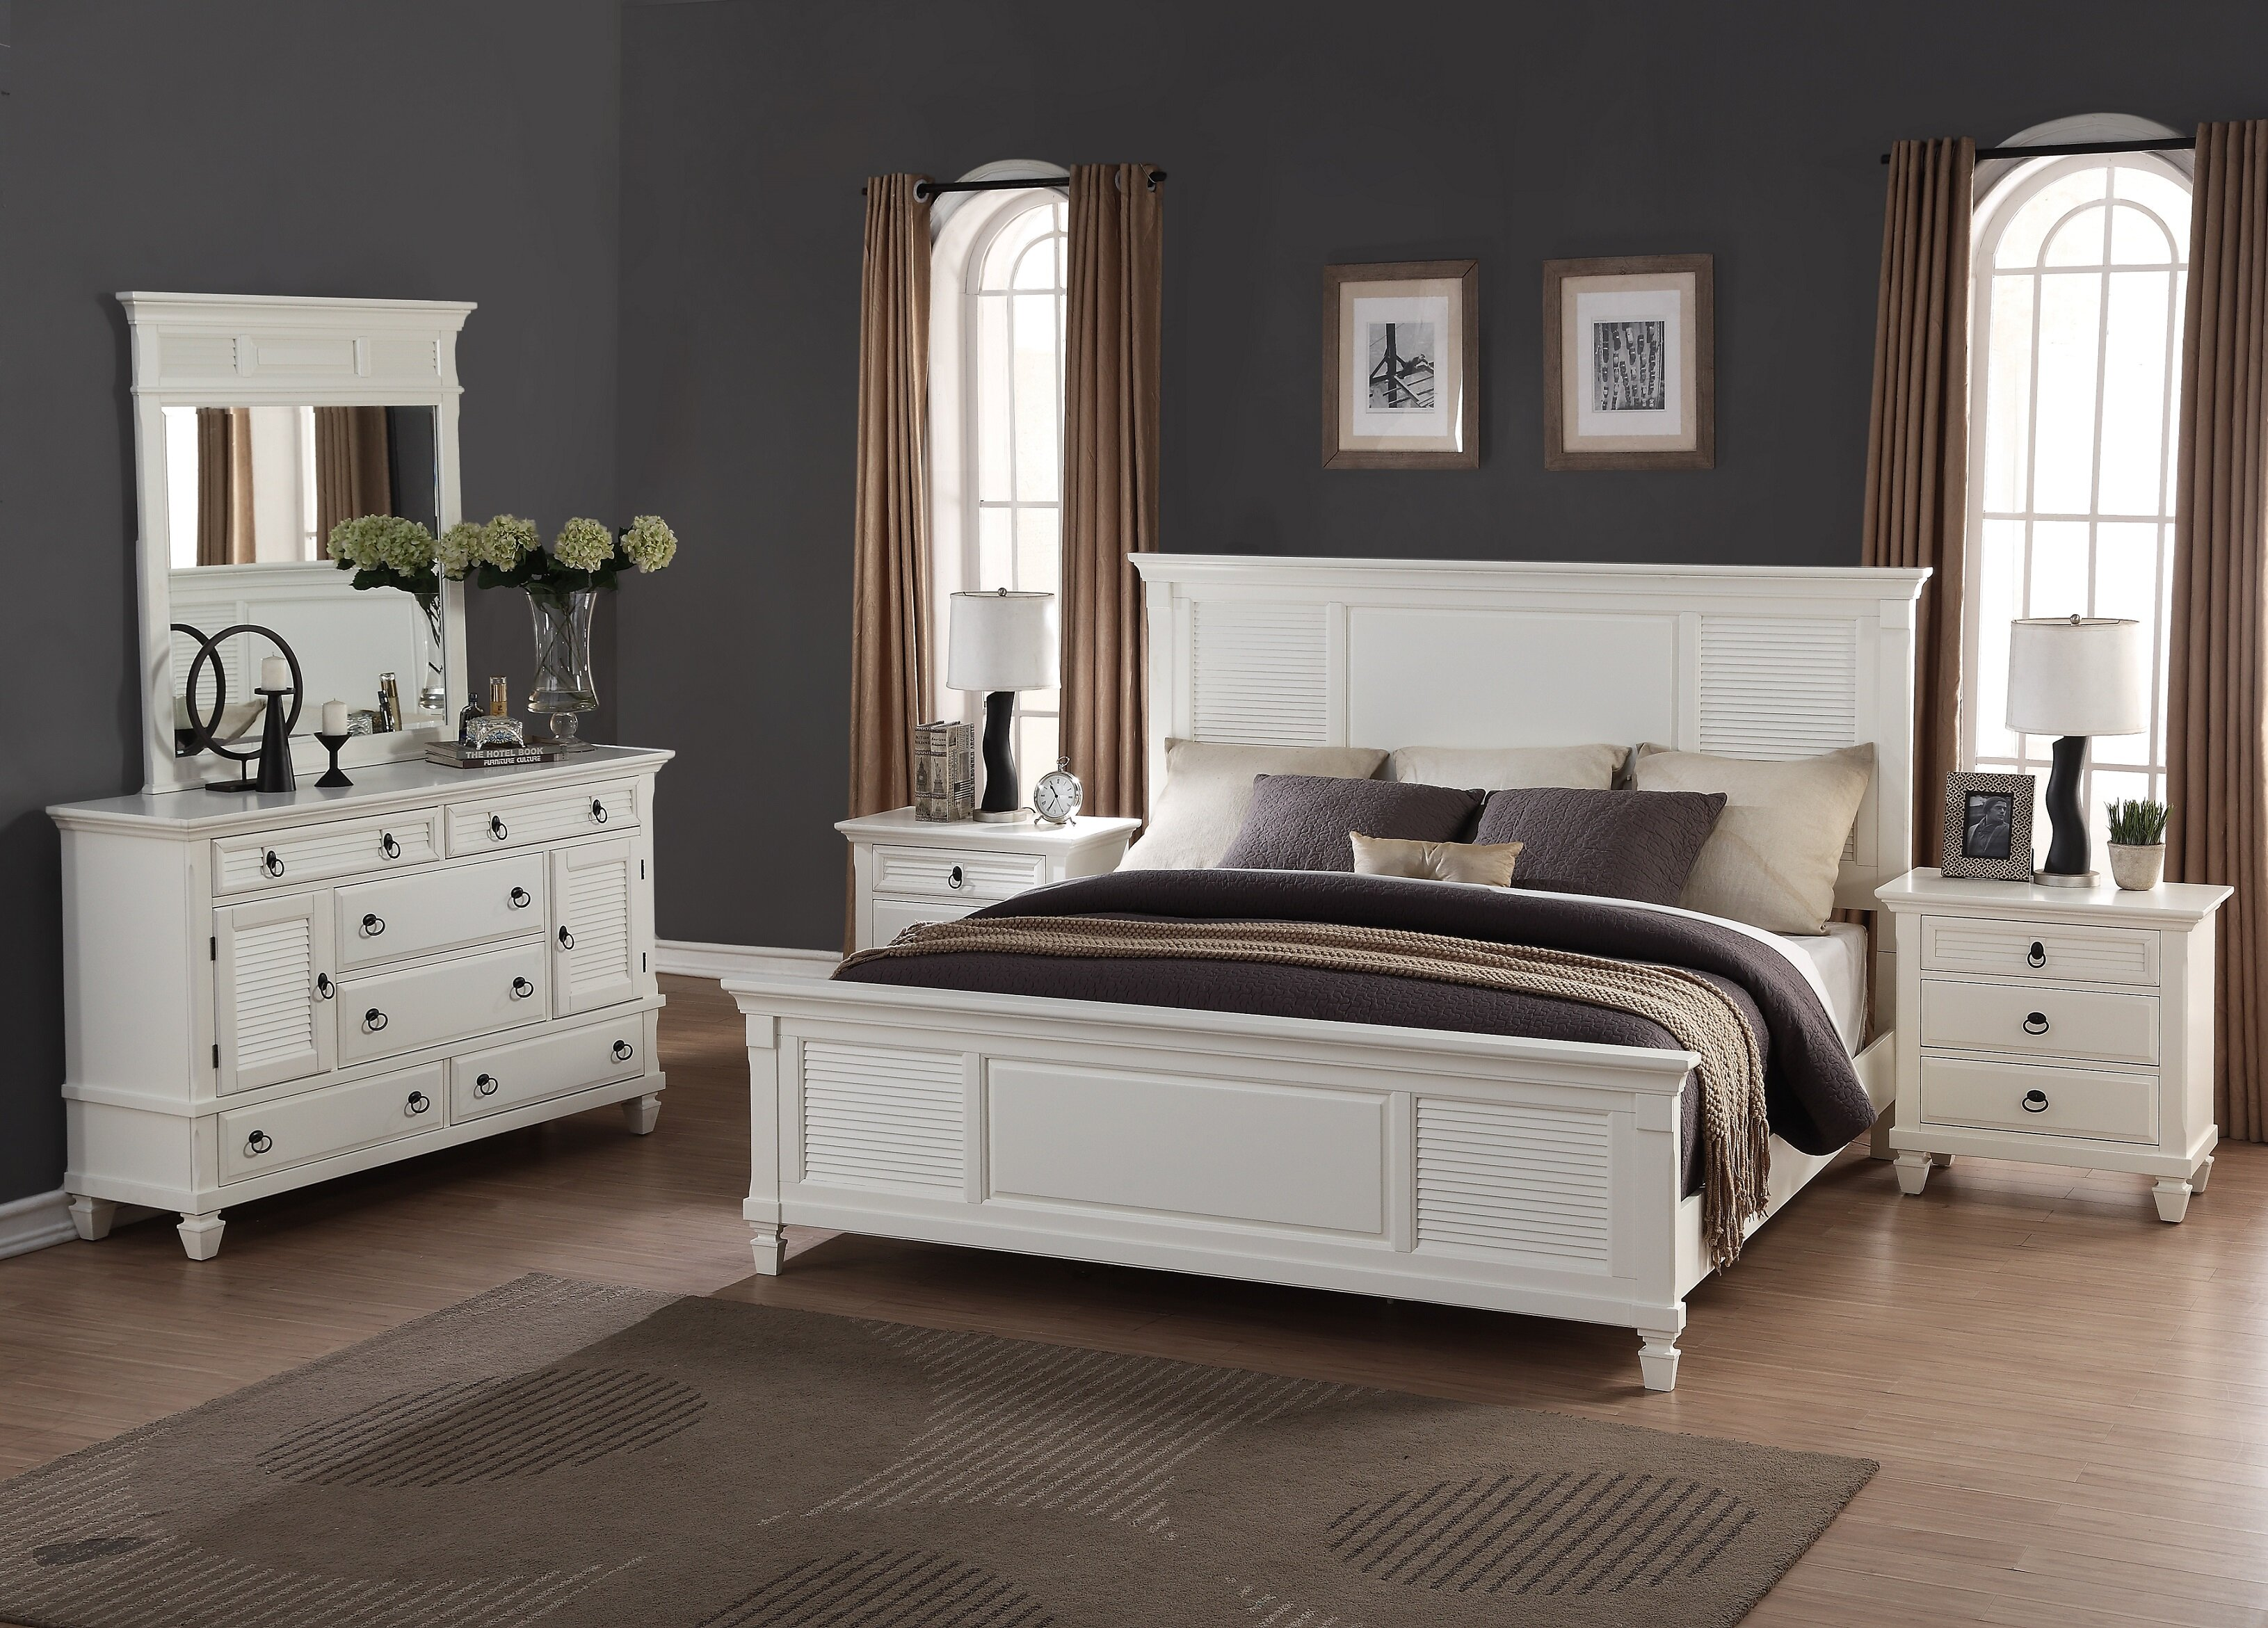 Great Roundhill Furniture Regitina King Platform 5 Piece Bedroom Set | Wayfair